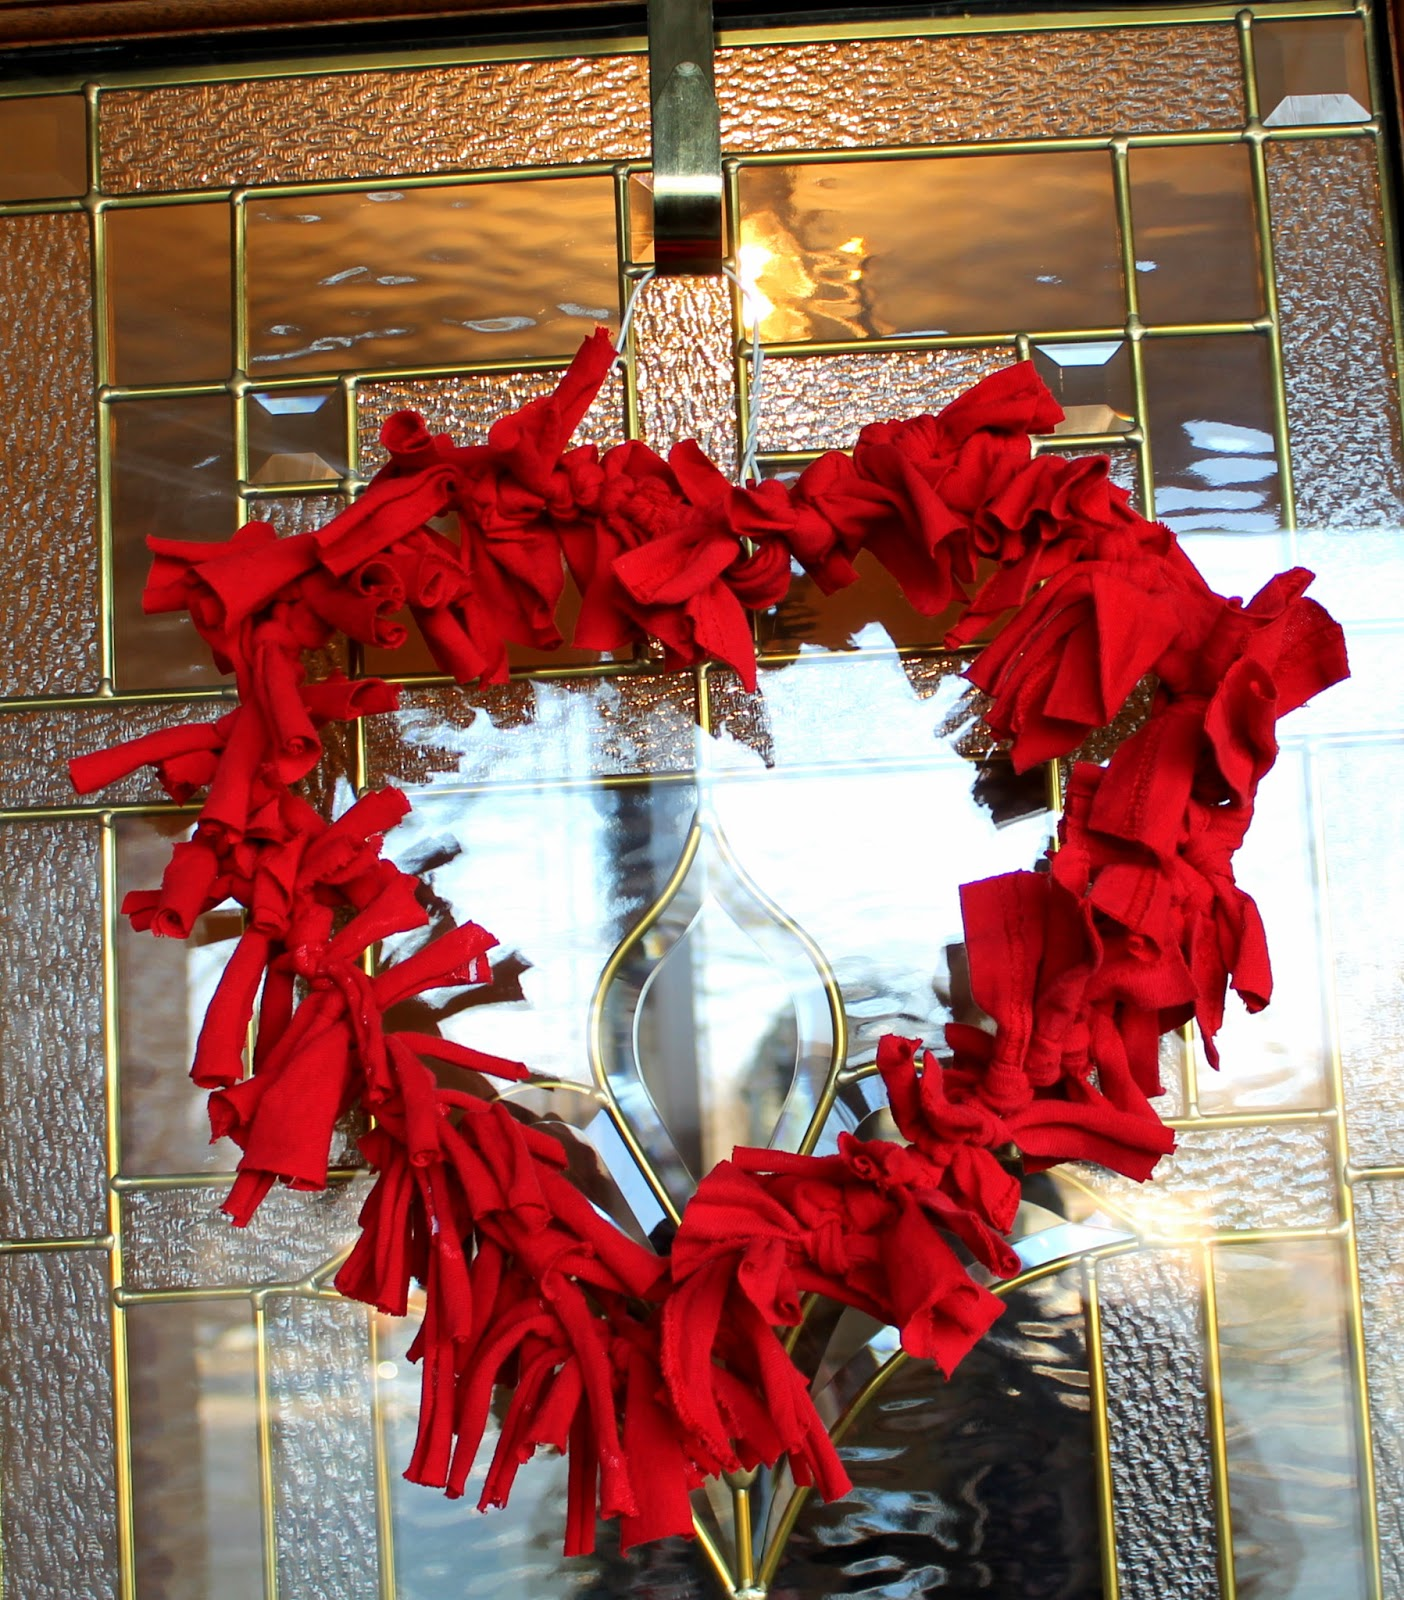 Diy Wreath Hanger Diy Heart Shaped Wreaths From Fabric Scraps Or Old Tees